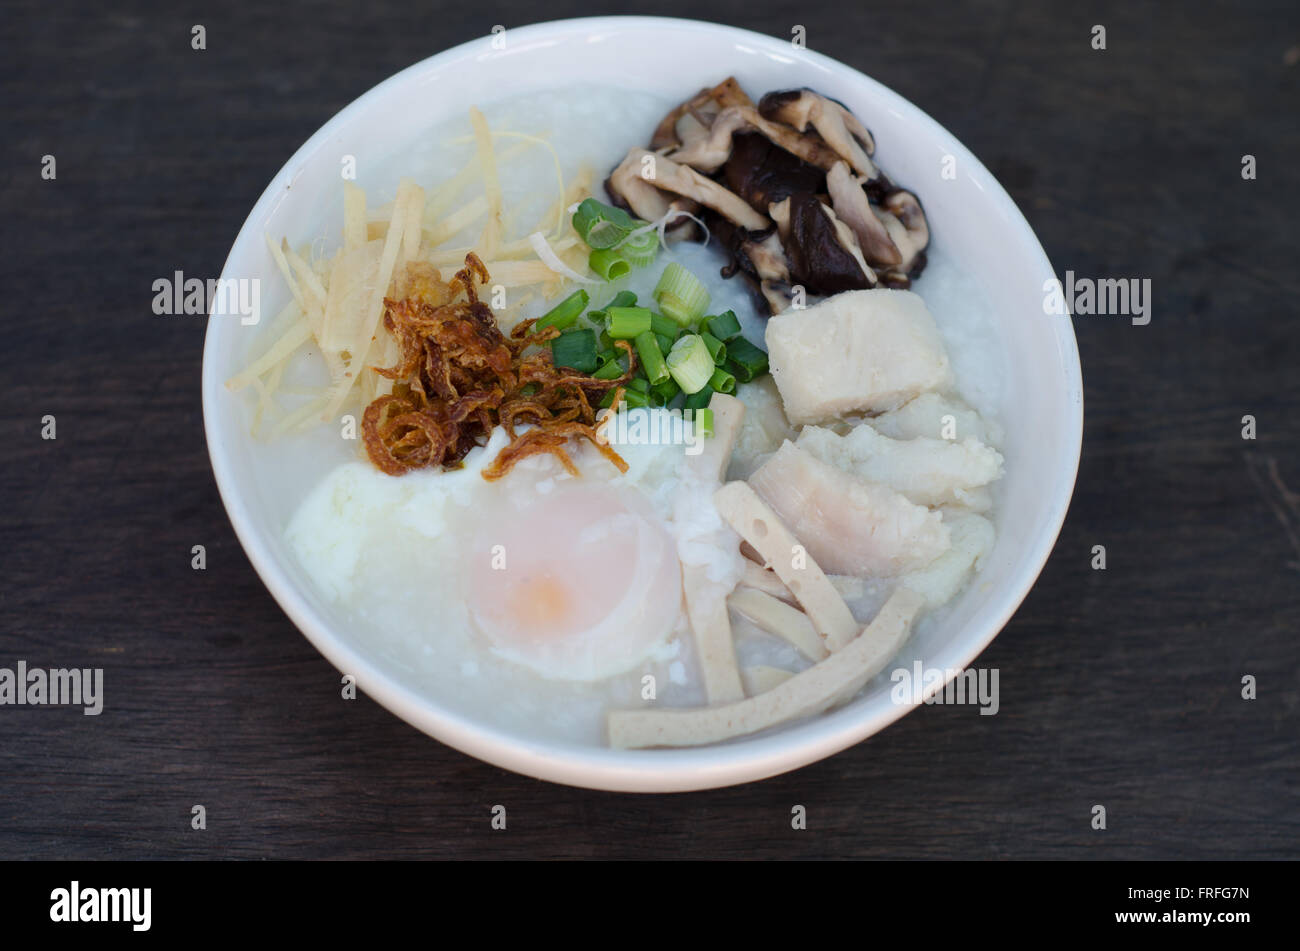 rice gruel with fish and egg mixed - Stock Image